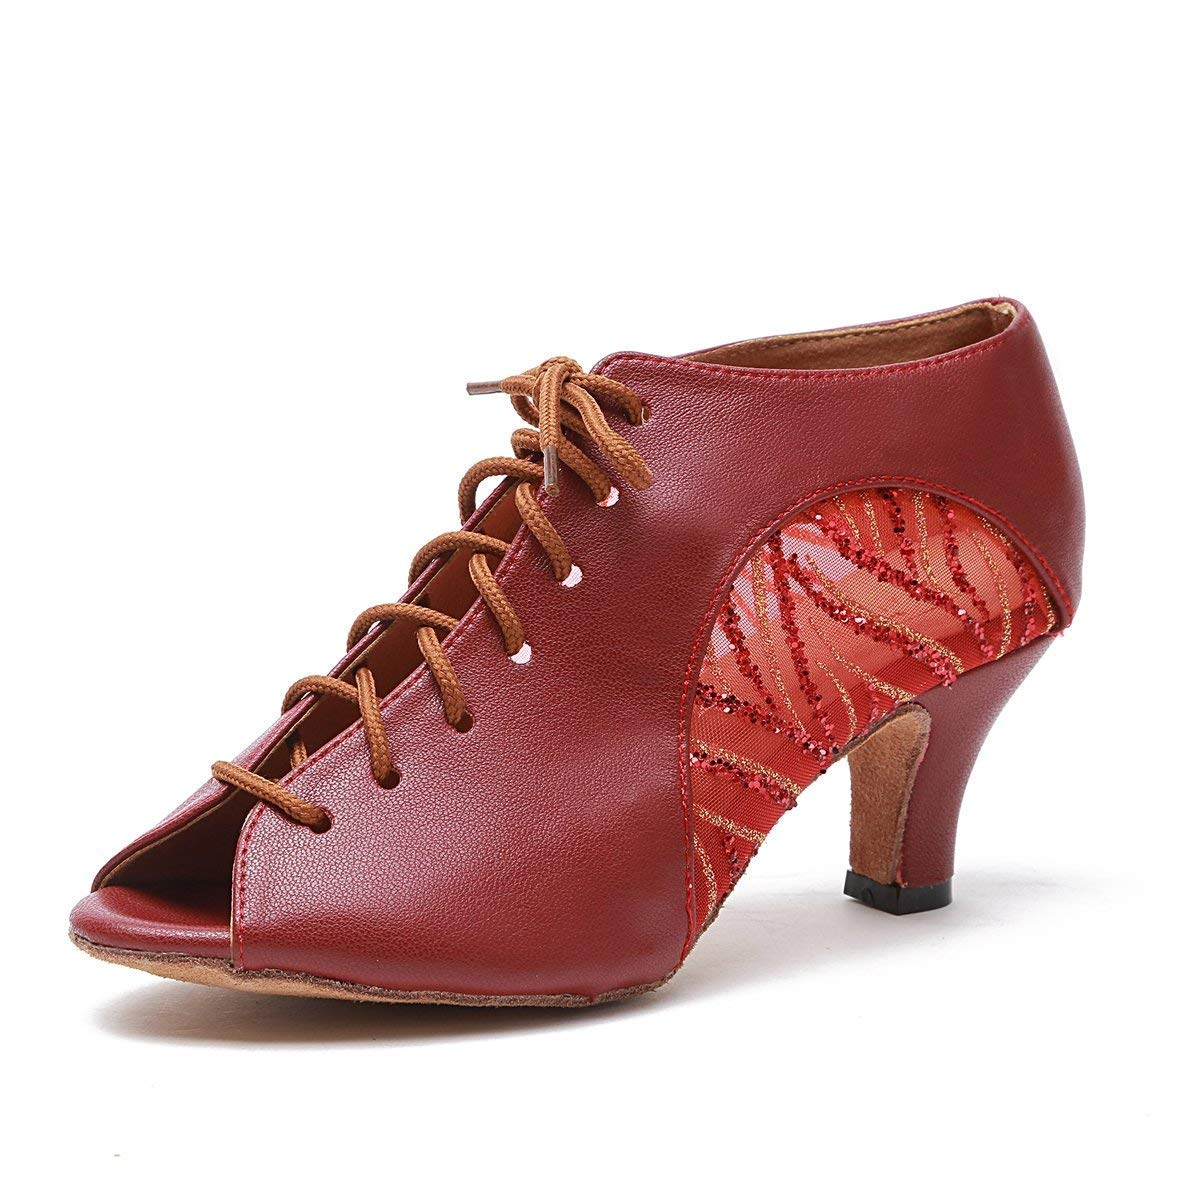 Qiusa Frauen Lace-up Lace-up Lace-up rot Mesh Leder Latin Dancing Schuhe Ankle Sandalen UK 4.5 (Farbe   - Größe   -) 7accd8